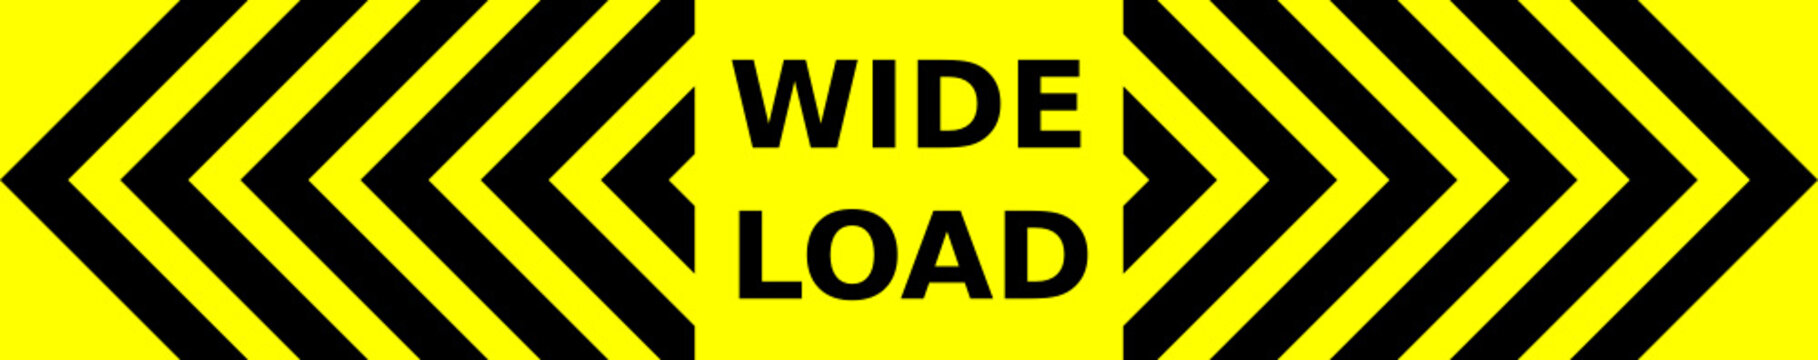 Black and yellow vector graphic of outward pointing chevrons and text saying Wide Load. It would serve as a warning to drivers approaching lorries from he rear